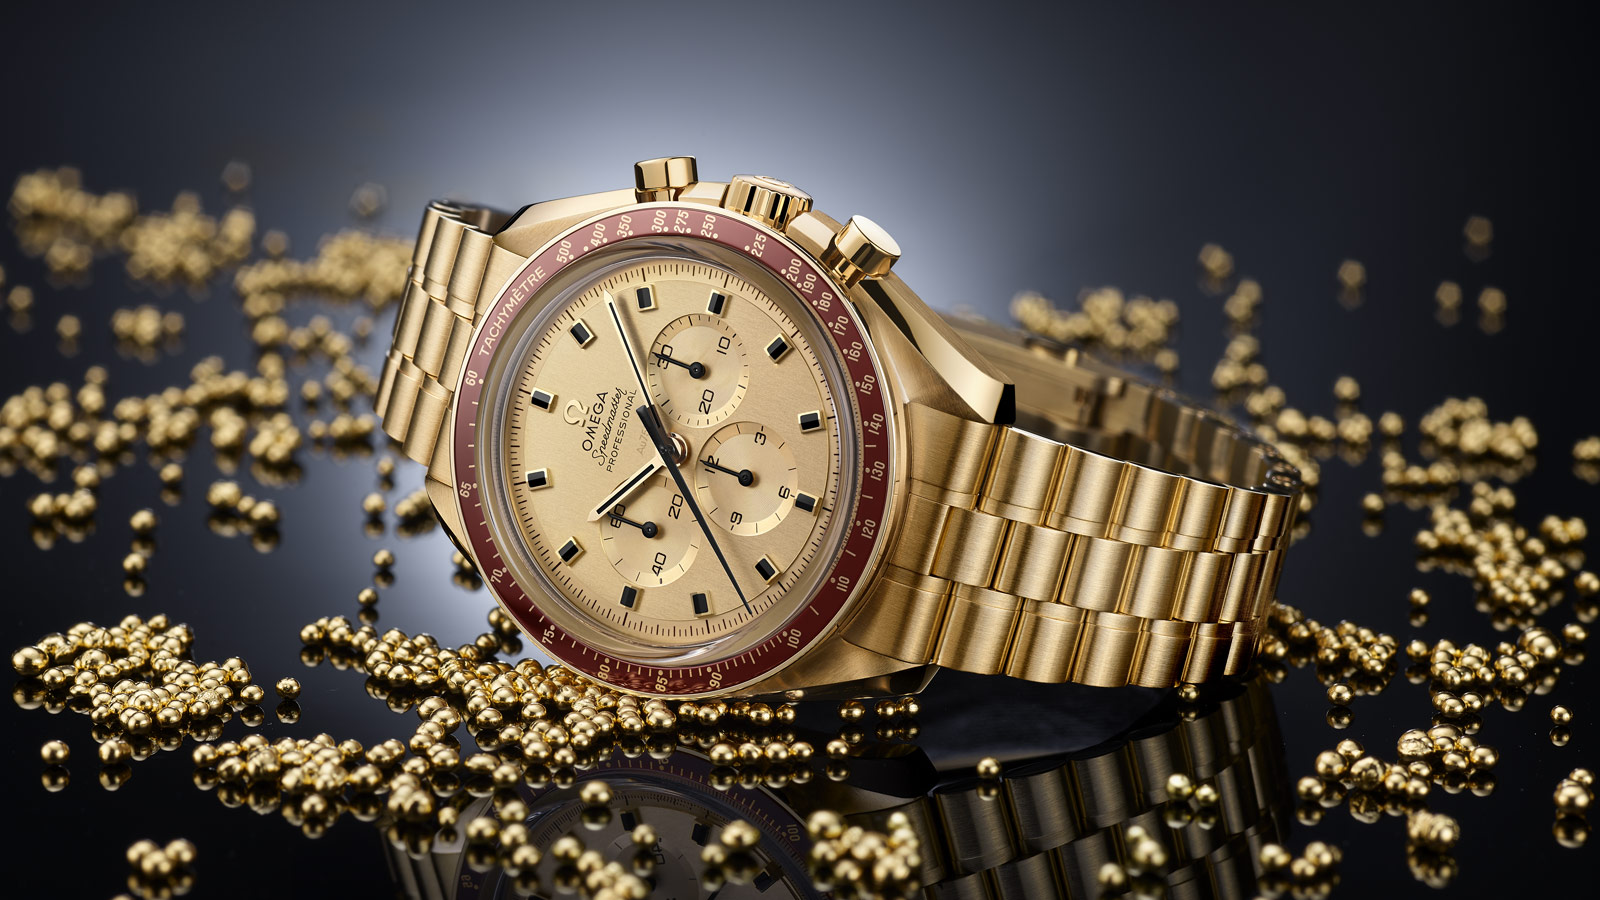 Speedmaster Moonwatch Moonwatch Anniversary Limited Series Watch - 310.60.42.50.99.001